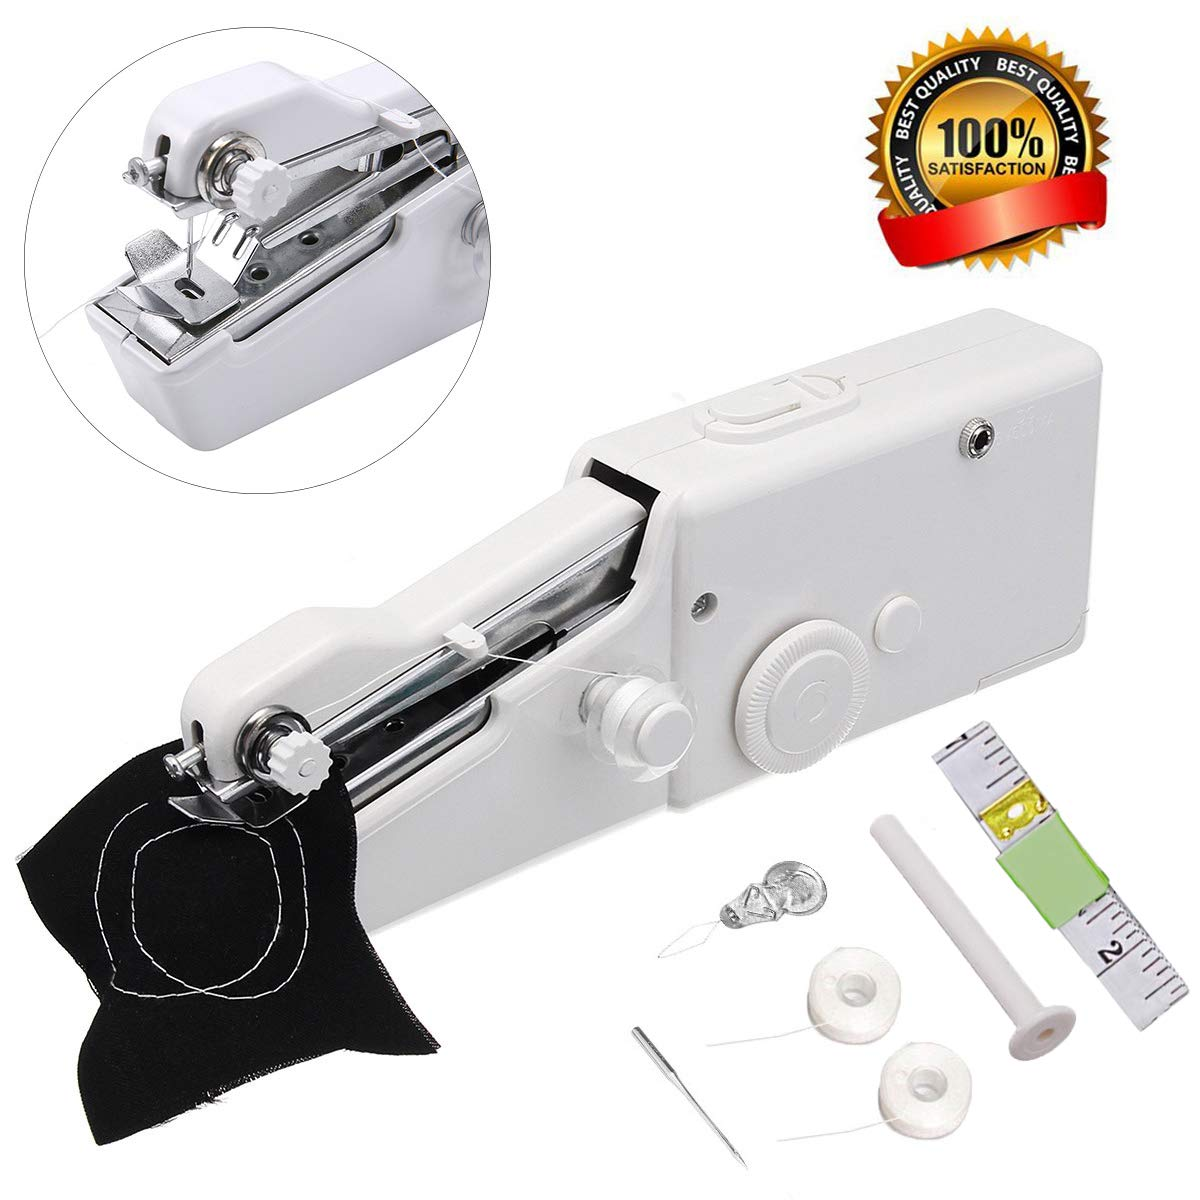 Mini Handheld Sewing Machine for Beginners Kids Home Travel Sewing Cordless Small Handy Stitch Sewing Machine Easy Quick Repairs Fabric Leather Denim